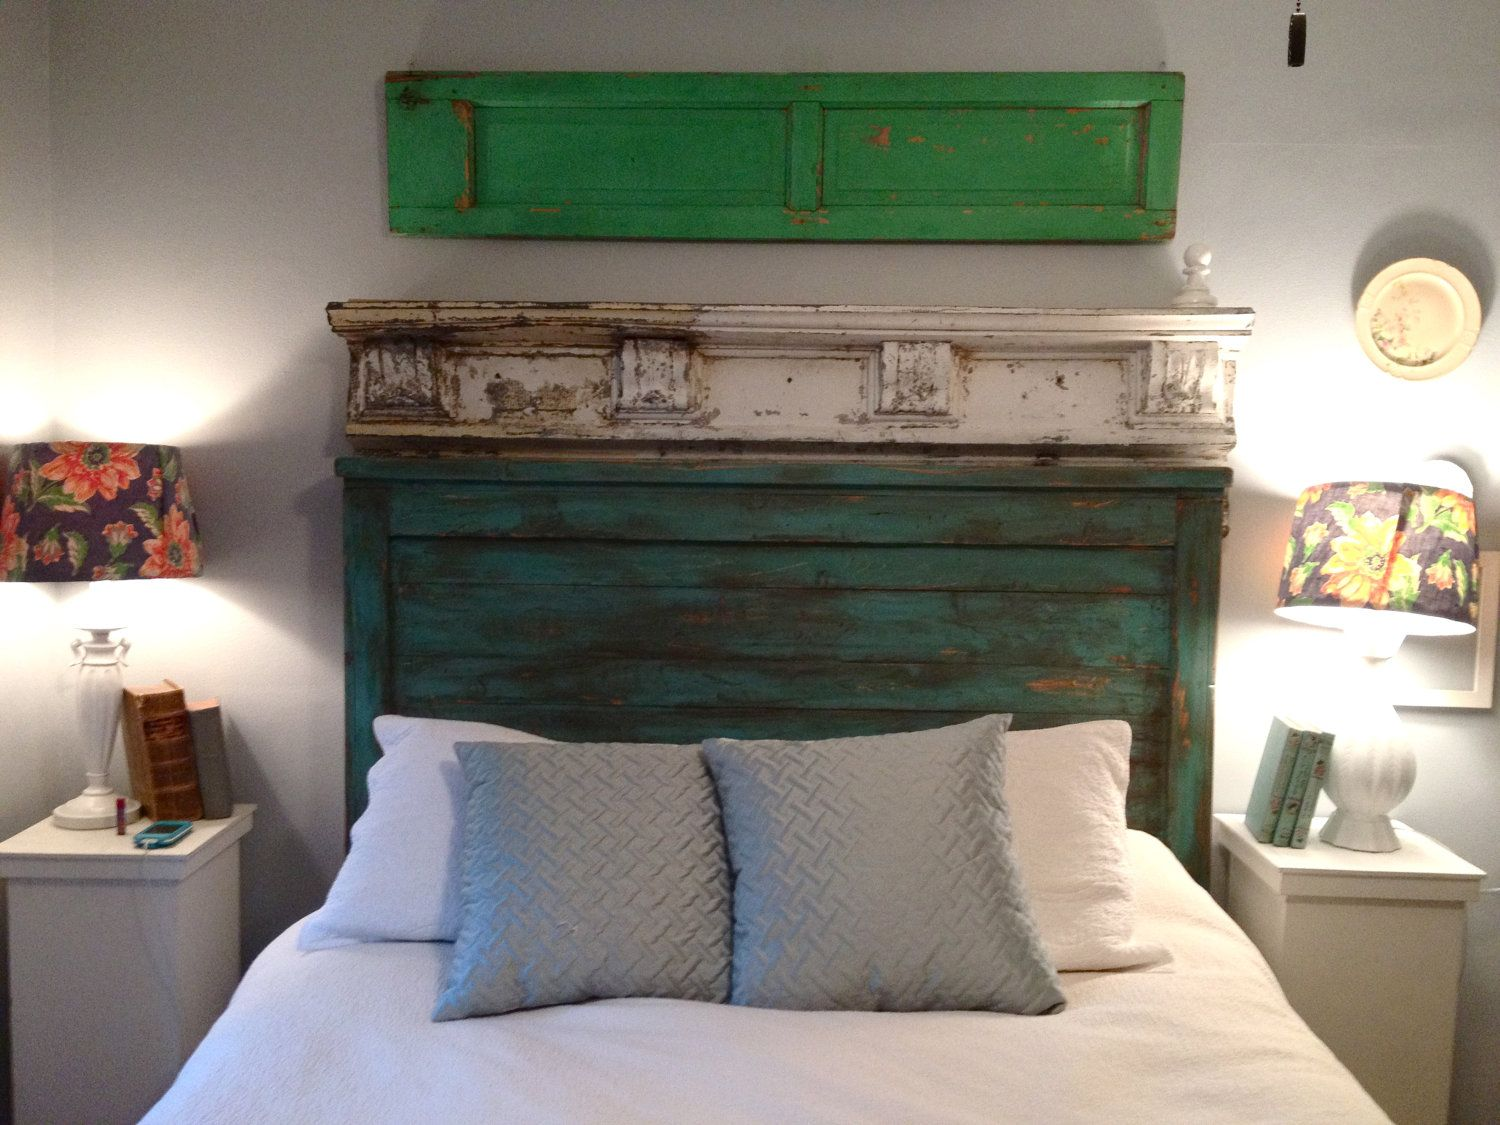 Ordinaire Distressed Queen Size Headboard   Turquoise   Custom Colors Available.  $250.00, Via Etsy.